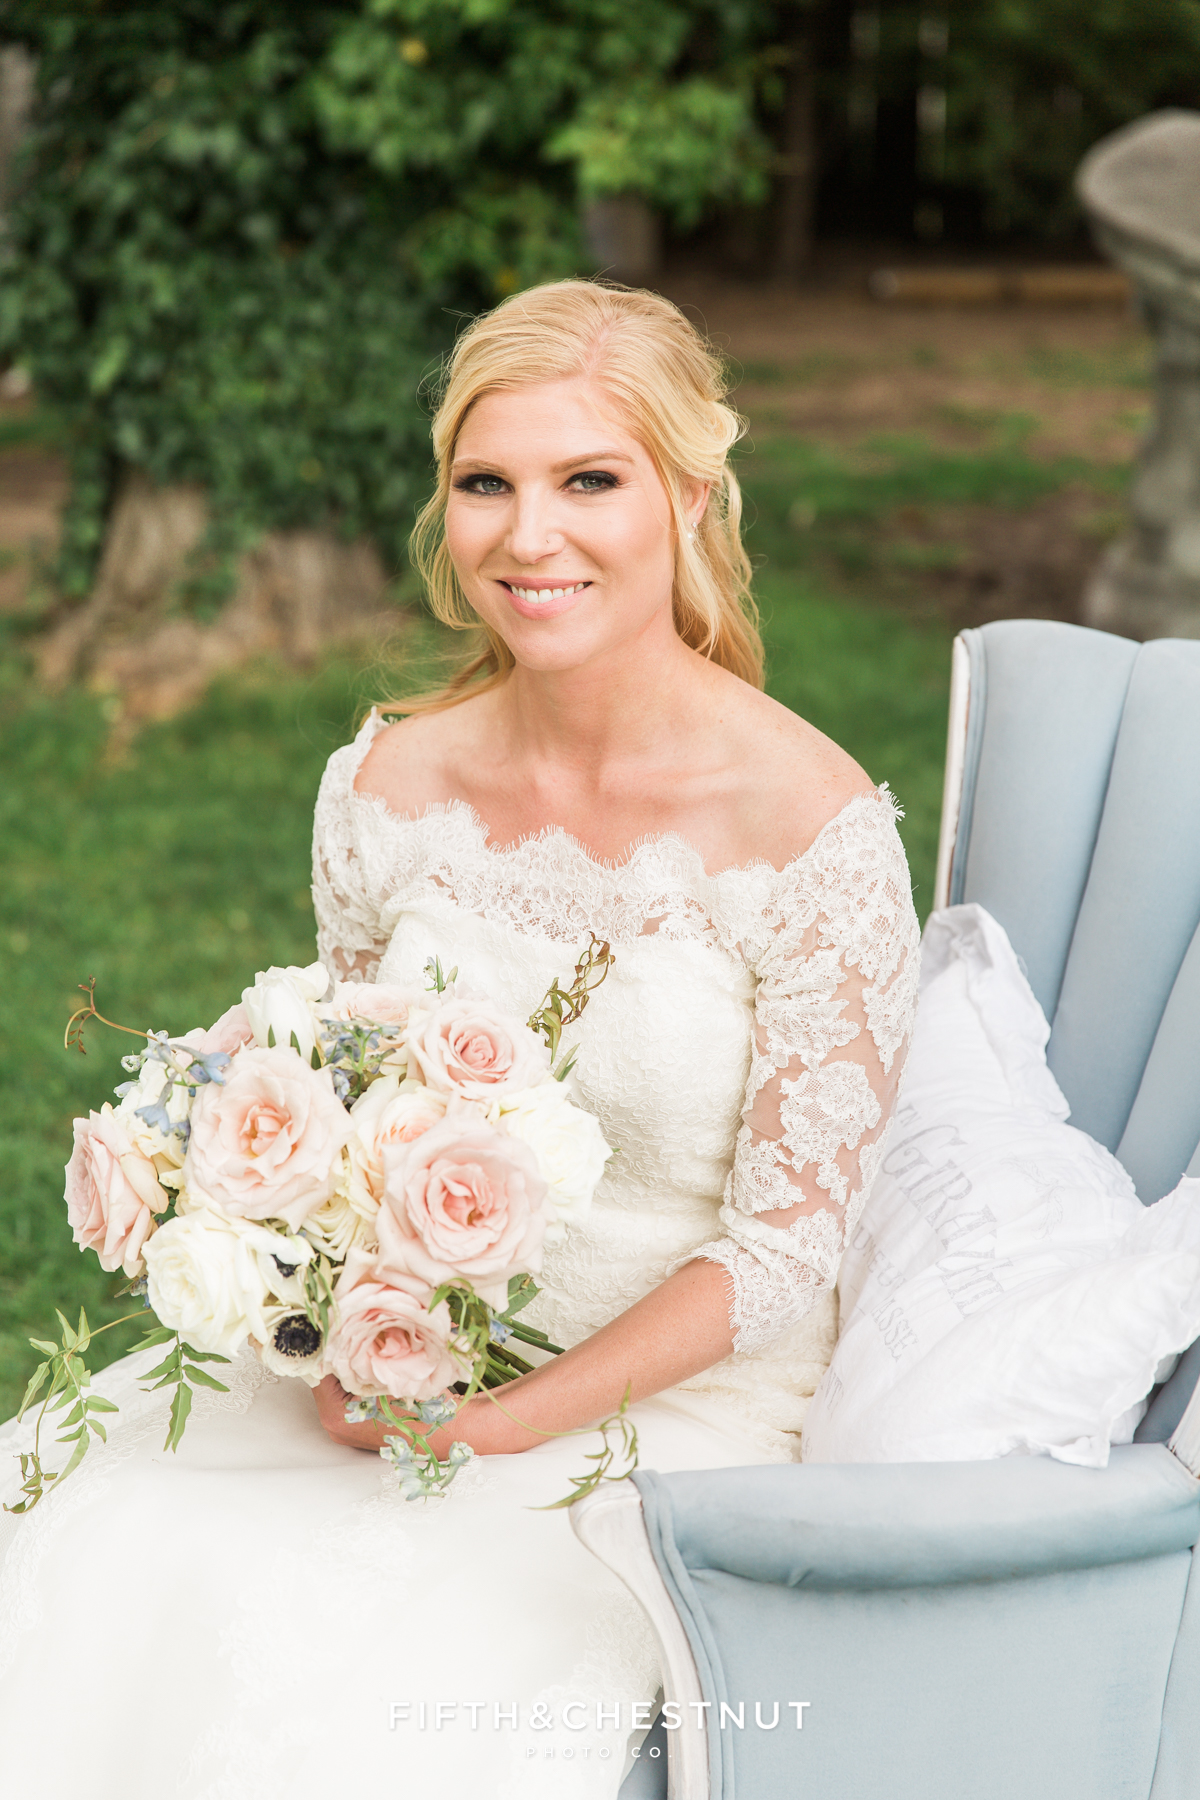 A gorgeous blonde bride smiles at the camera holding a whimsical wedding bouquet on a country french blue chair at a private estate